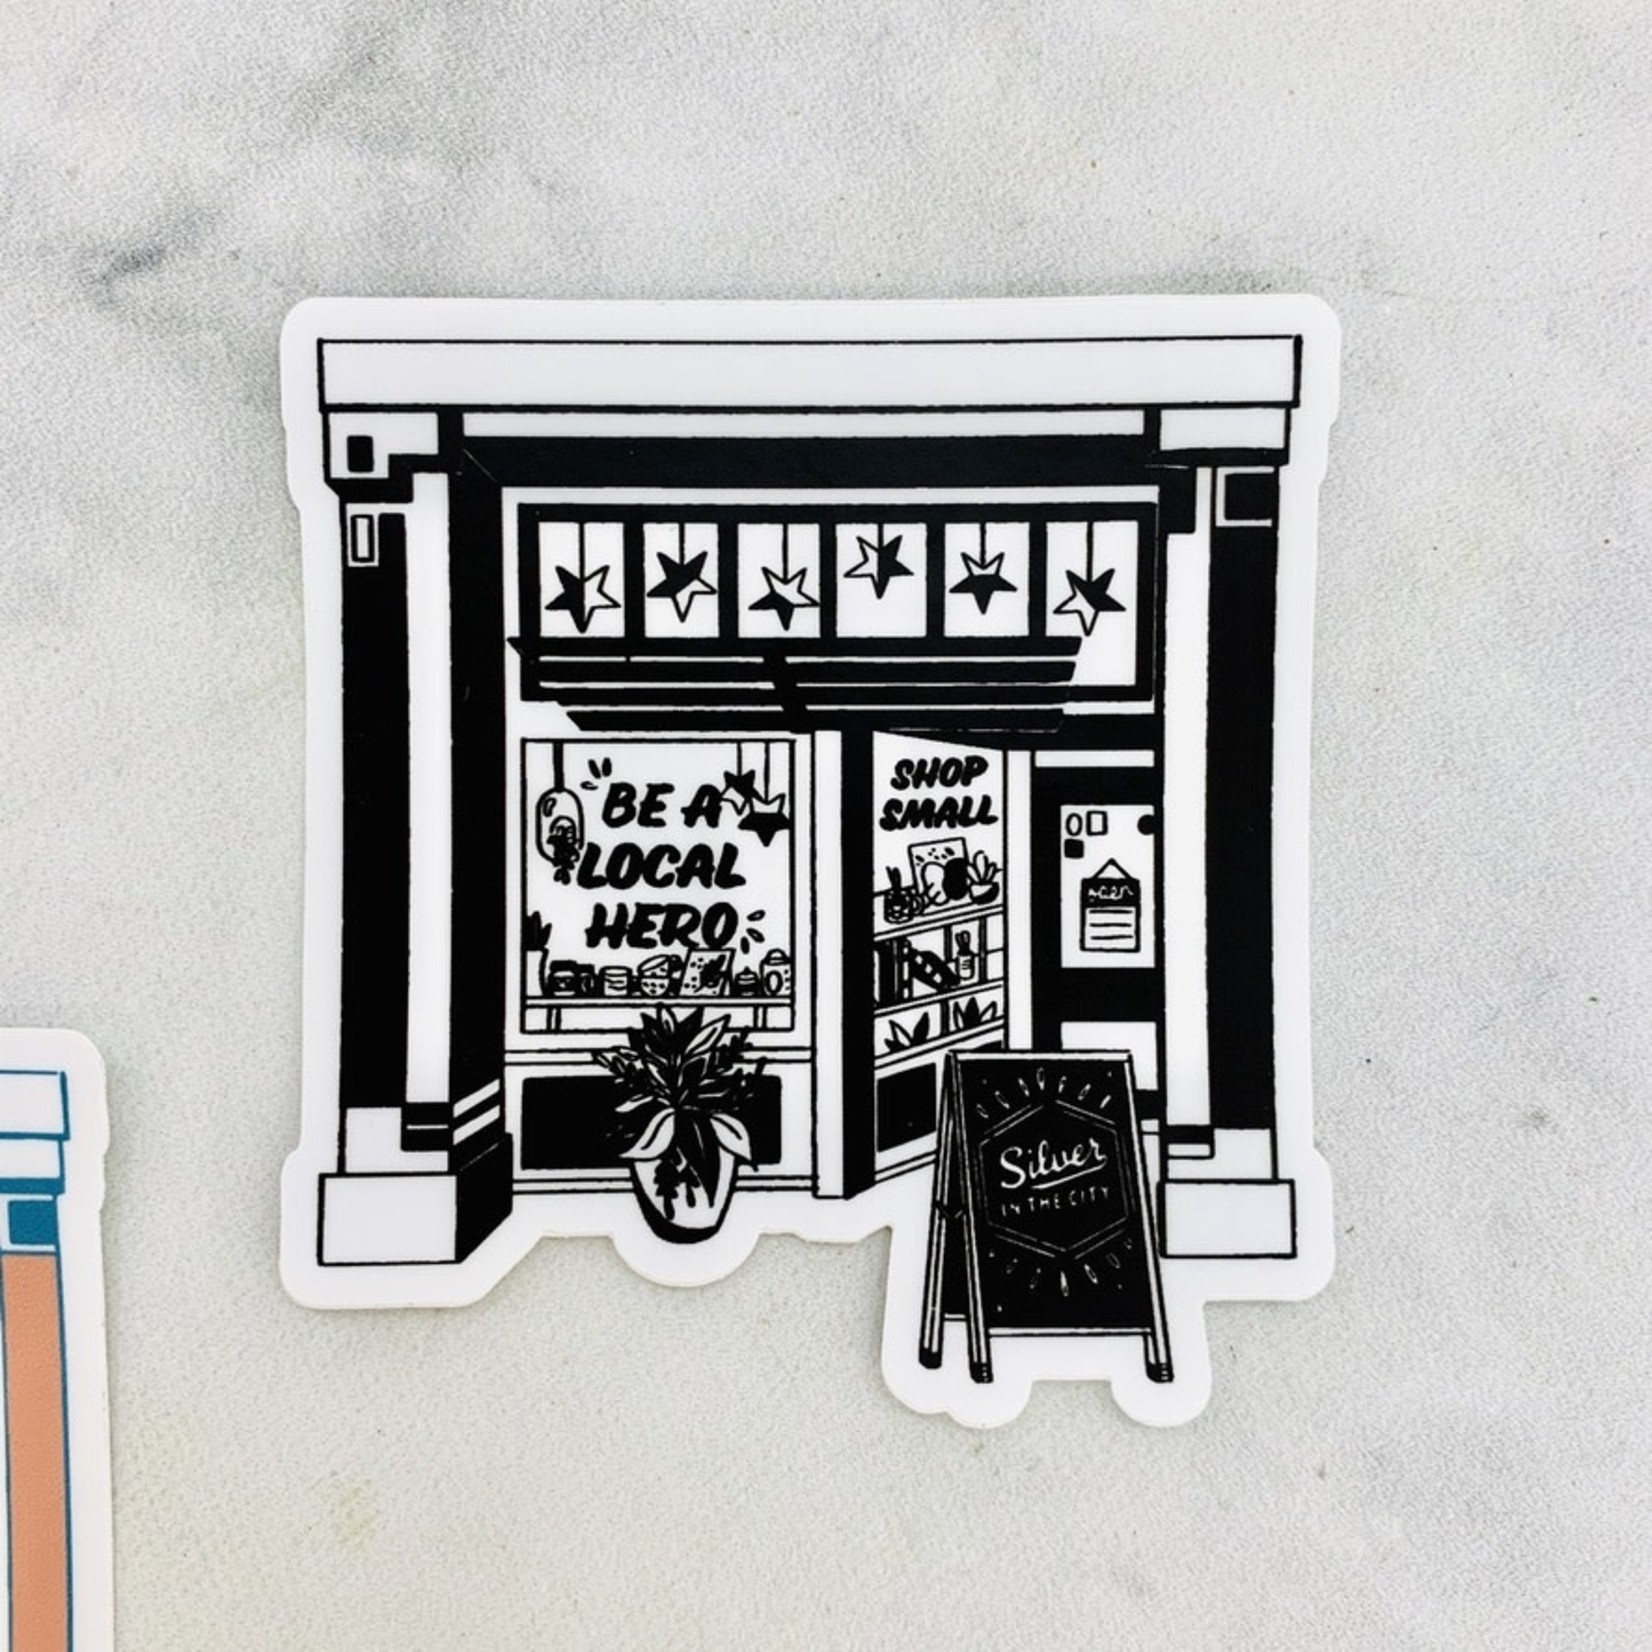 Shop Small Storefront Sticker